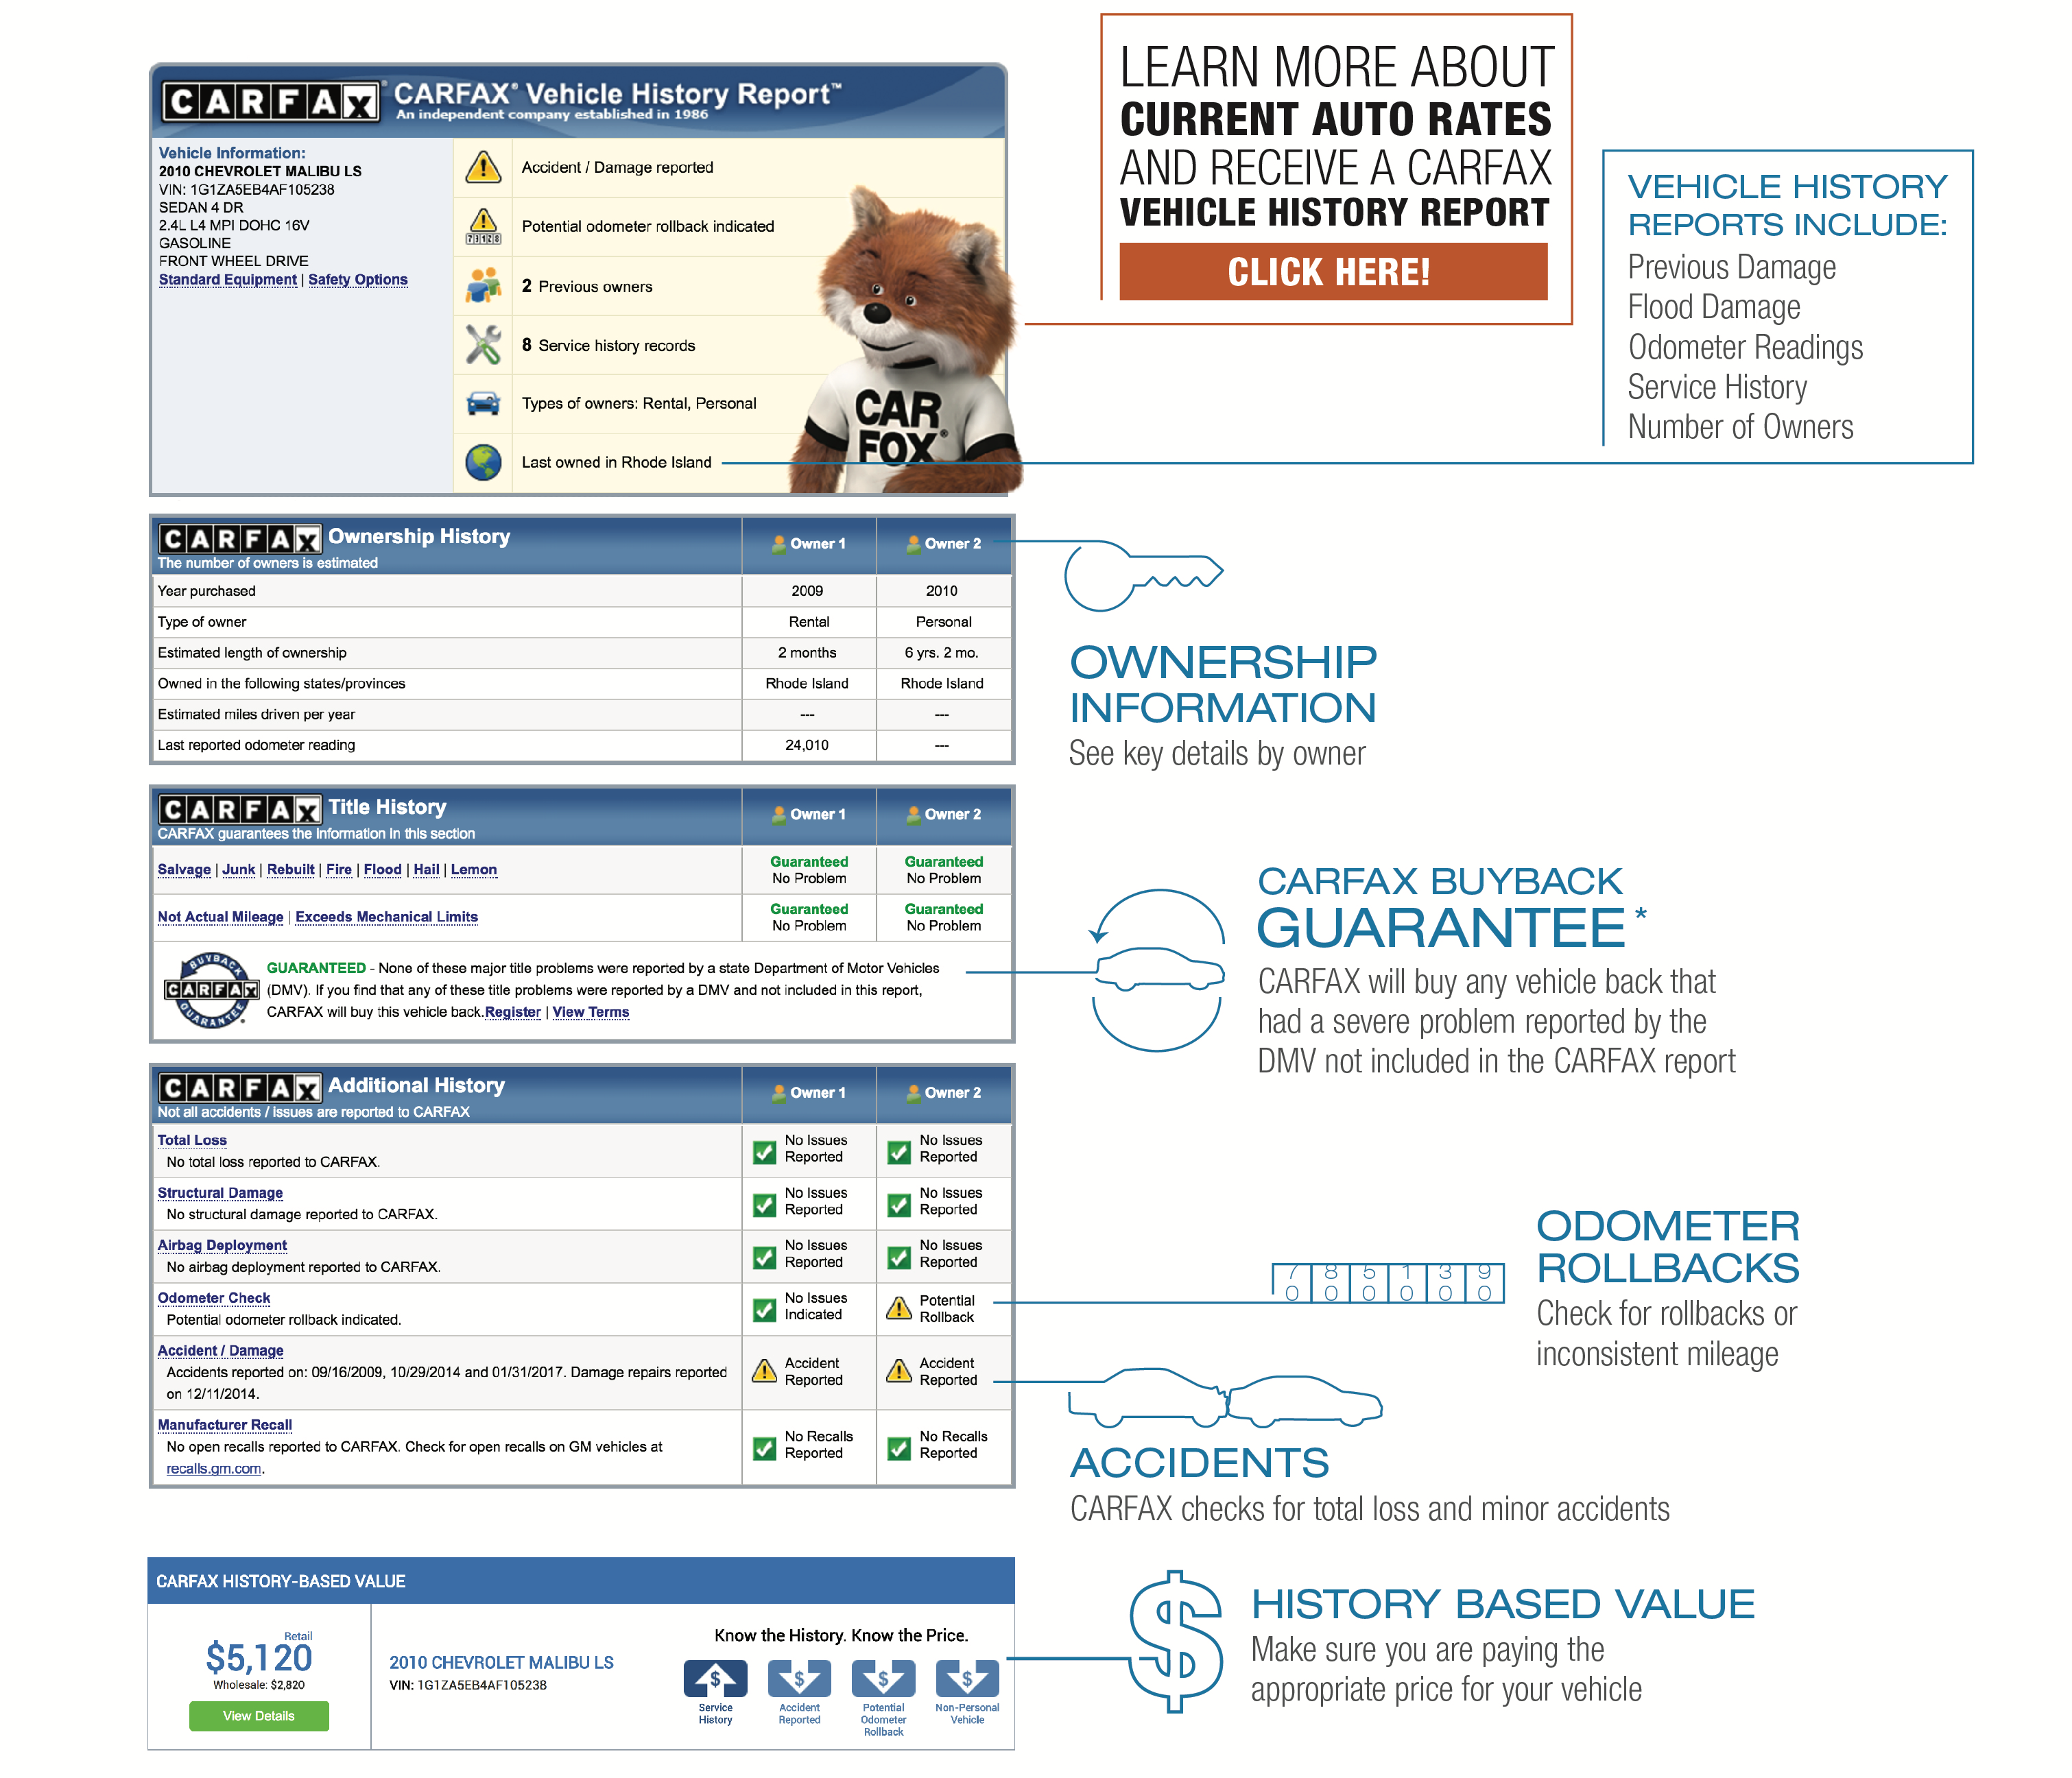 Carfax Dealer Best Of Carfax Banking and Insurance Group More Information Better Decisions